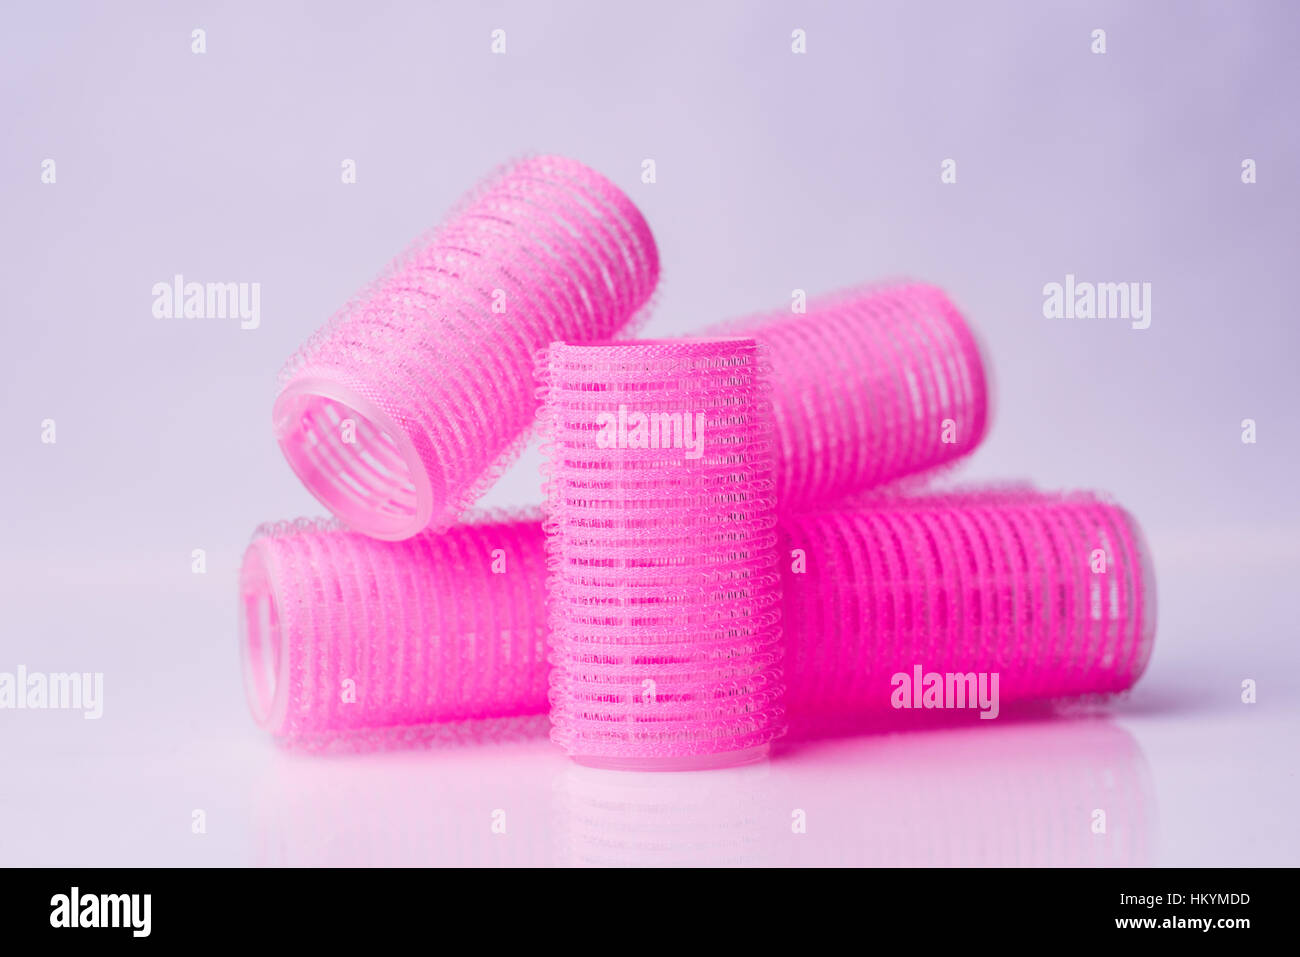 Hair curlers on white background - Stock Image